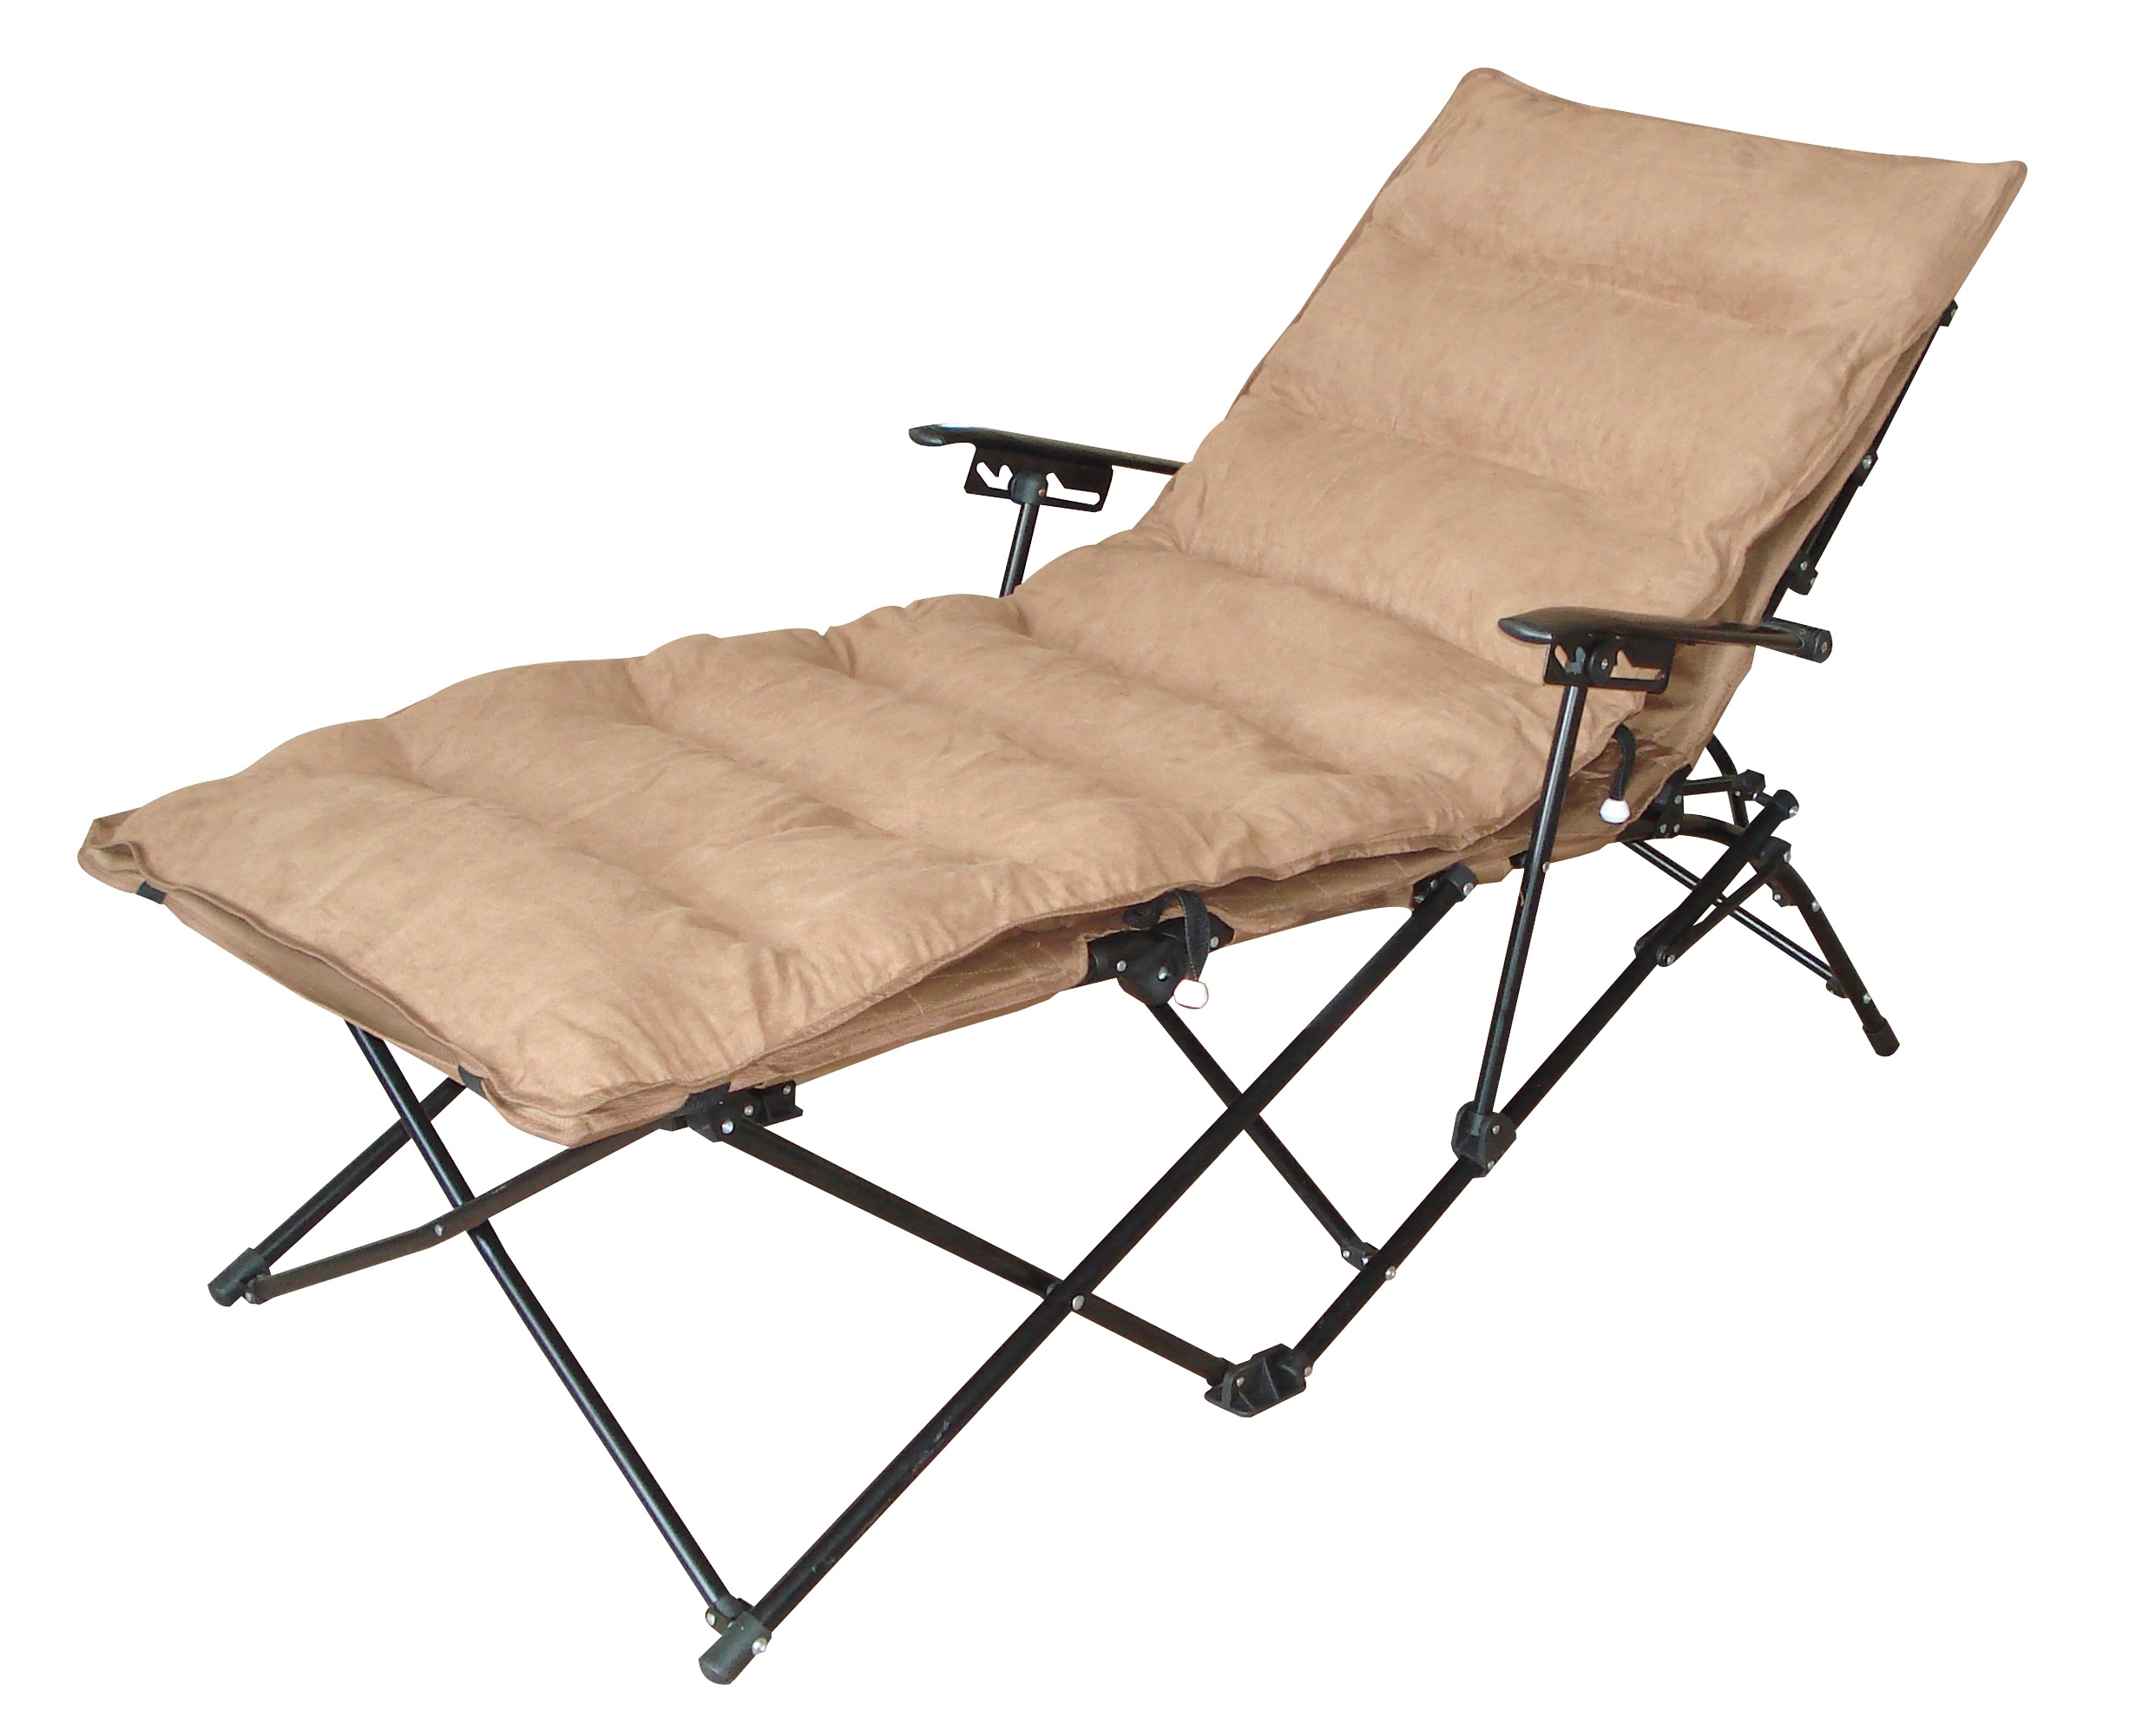 Favorite Jelly Chaise Lounge Chairs Intended For Outdoor : Outdoor Lounge Chairs Clearance Beach Chairs On Sale (View 10 of 15)